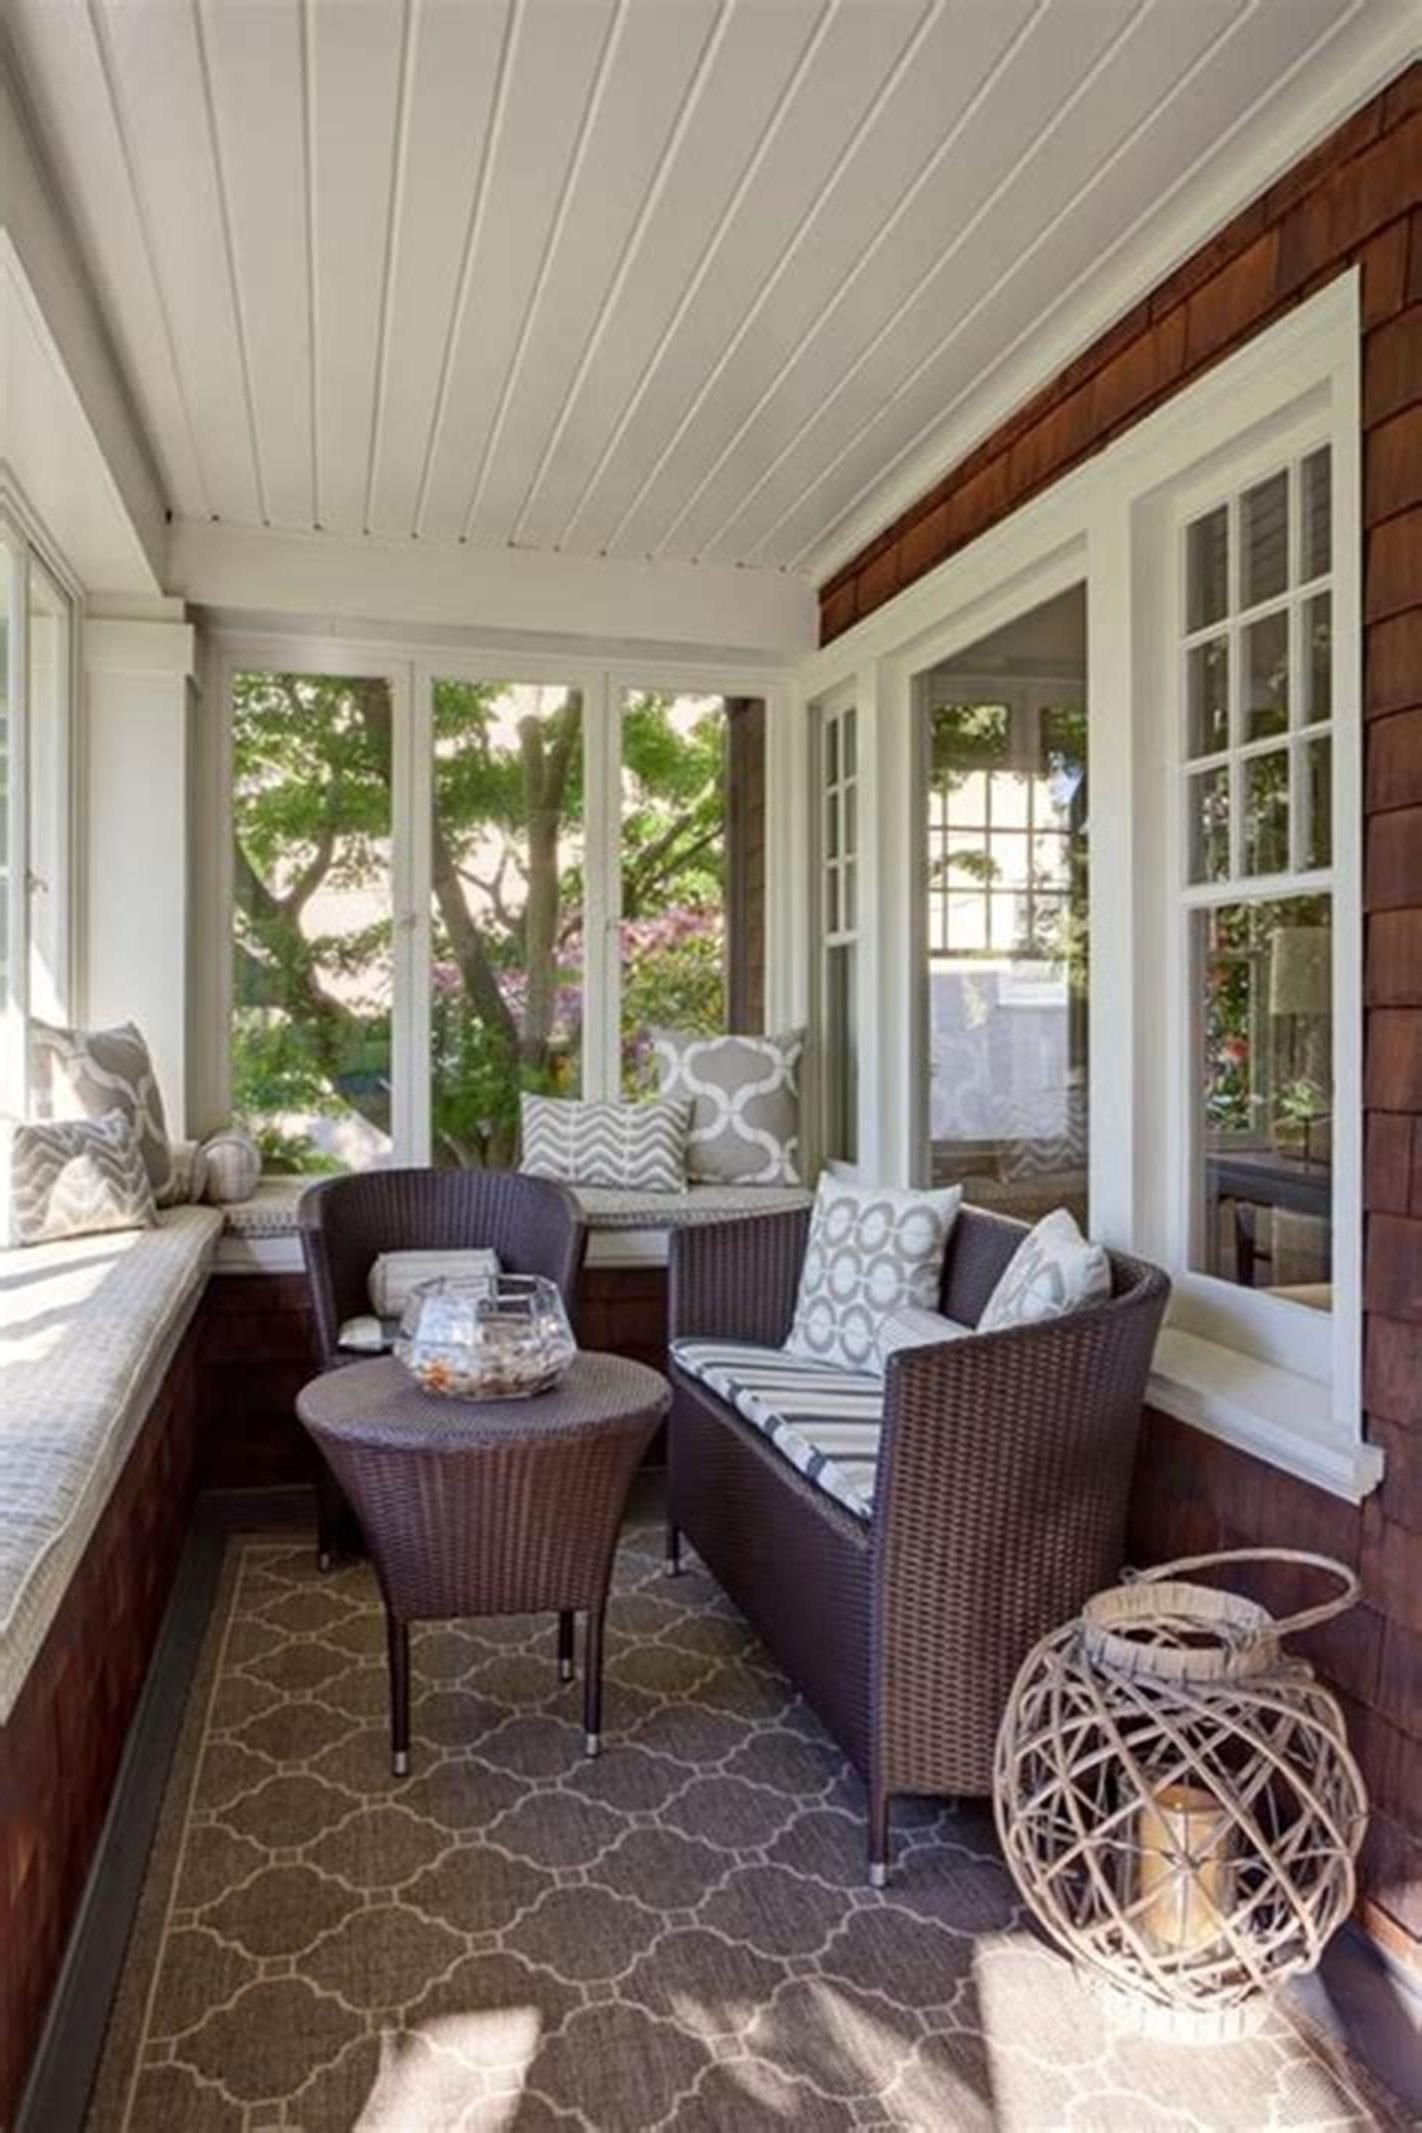 10 Stunning Sunroom Decor and Design Ideas | Small sunroom ...